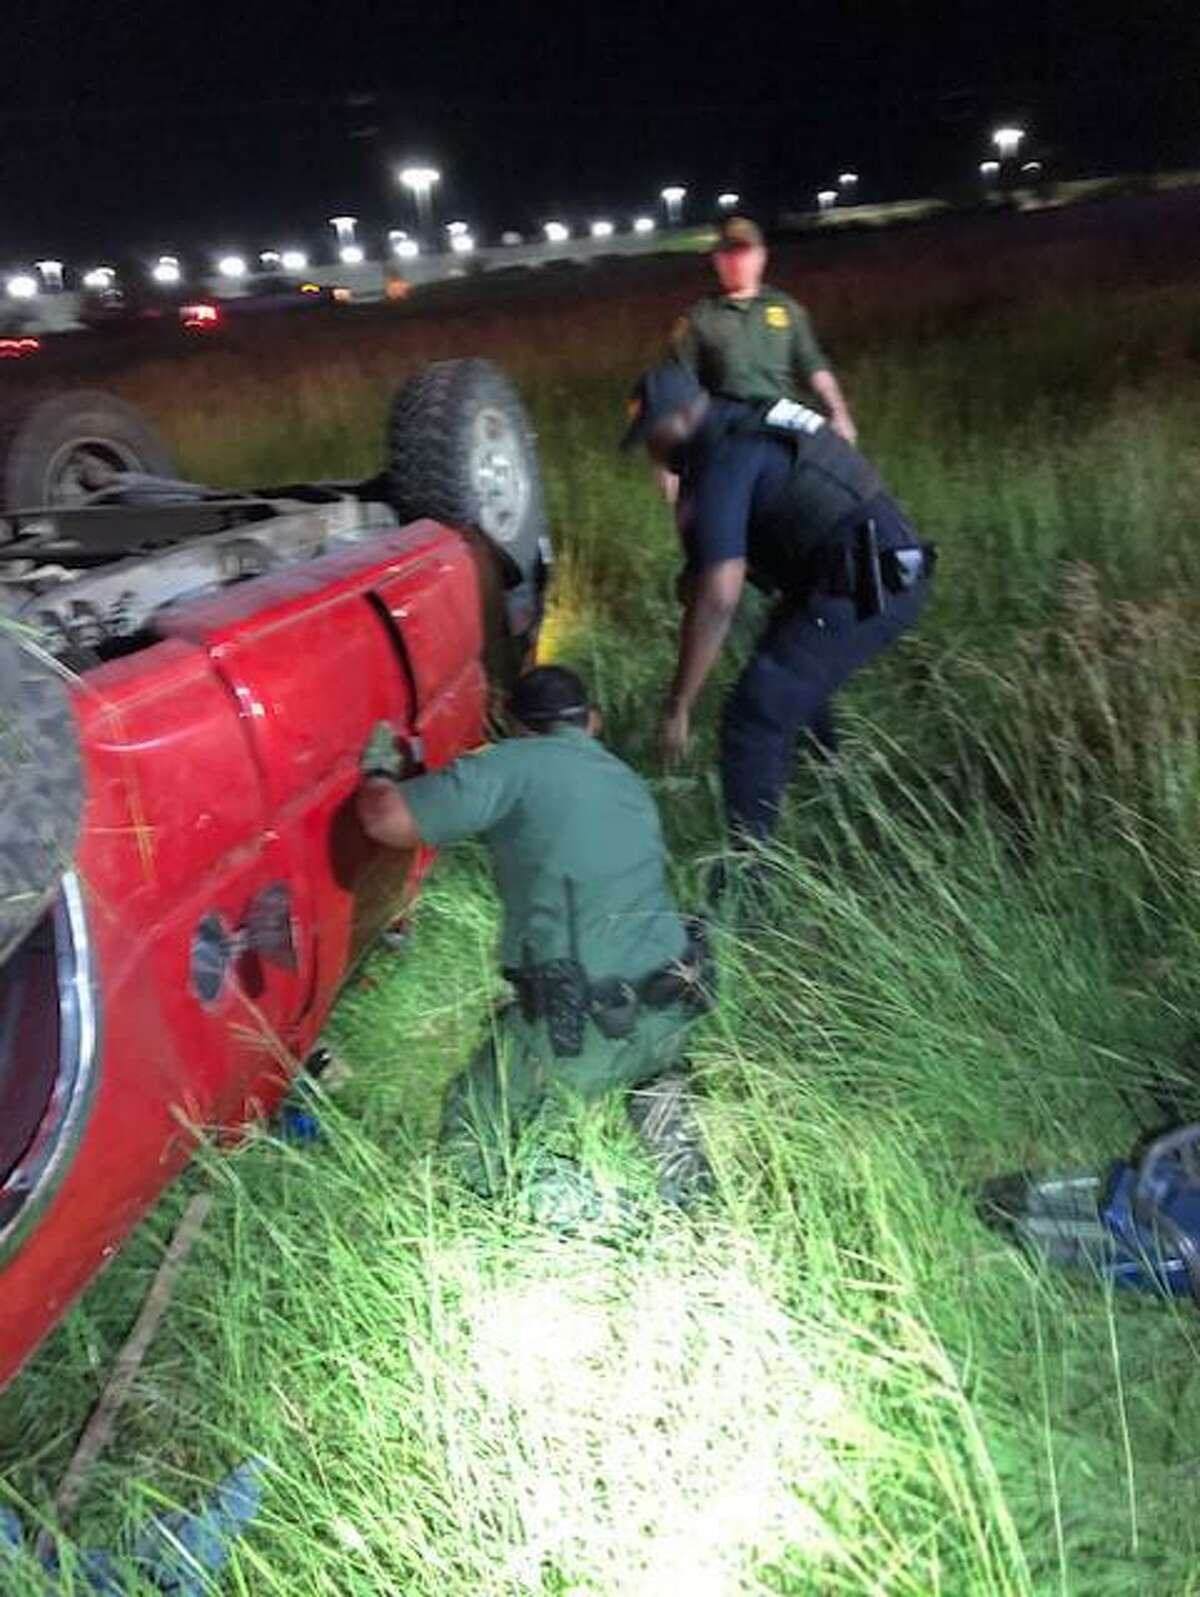 U.S. Border Patrol agents and a U.S. Customs and Border Protection officer are seen assisting a driver who was involved in a rollover crash in north Laredo early Thursday. The motorist was medically cleared at the scene.